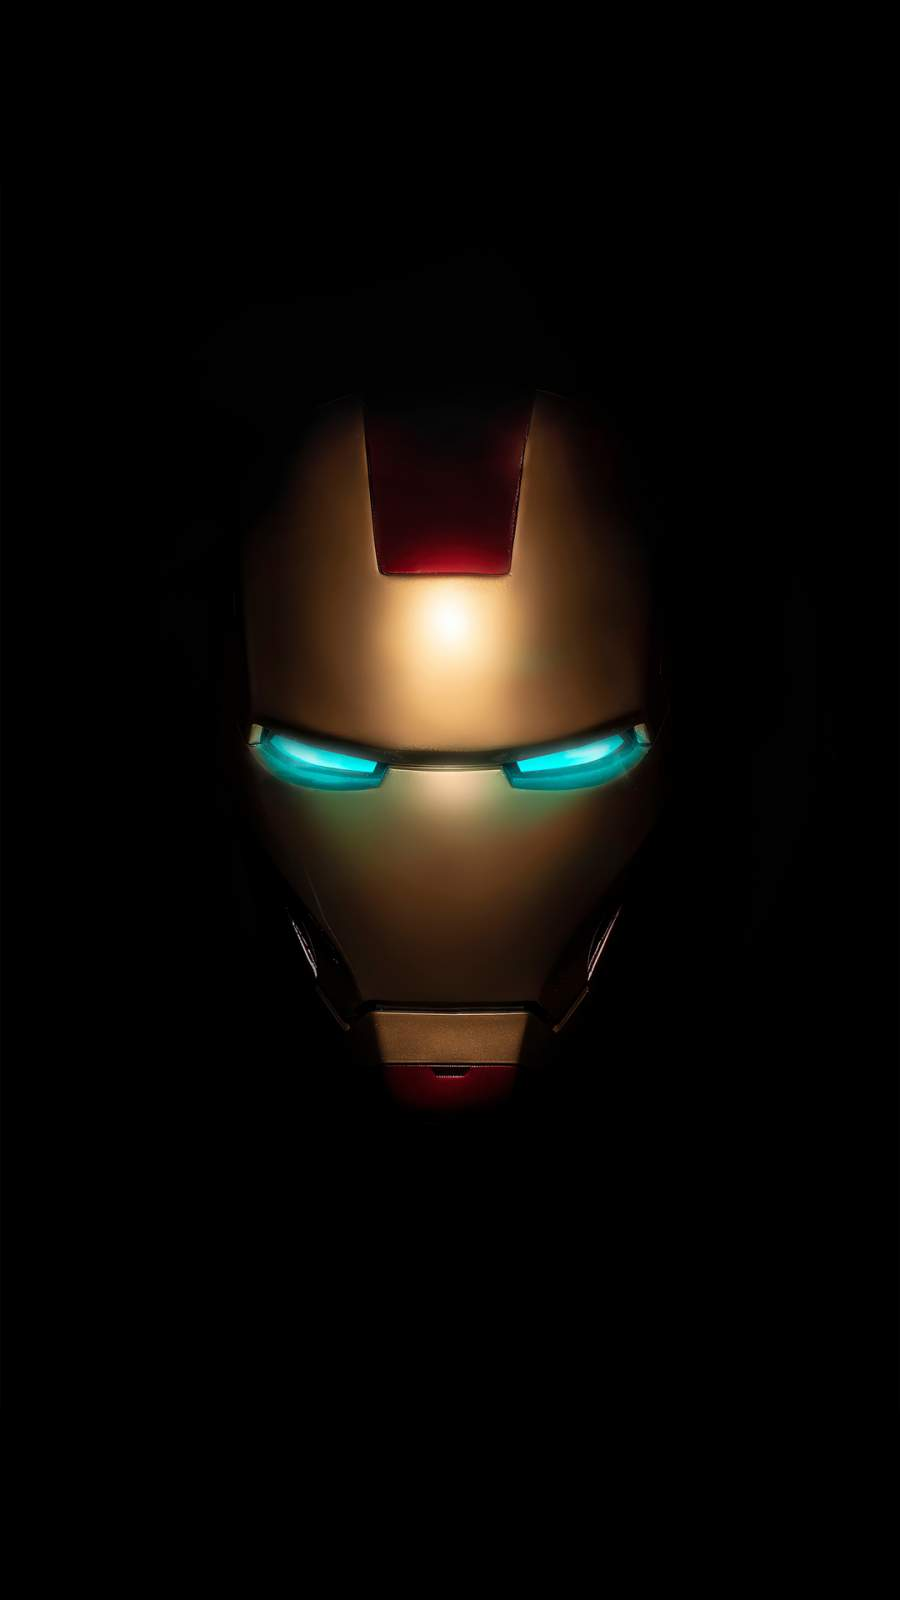 Iron Man Mask 4K